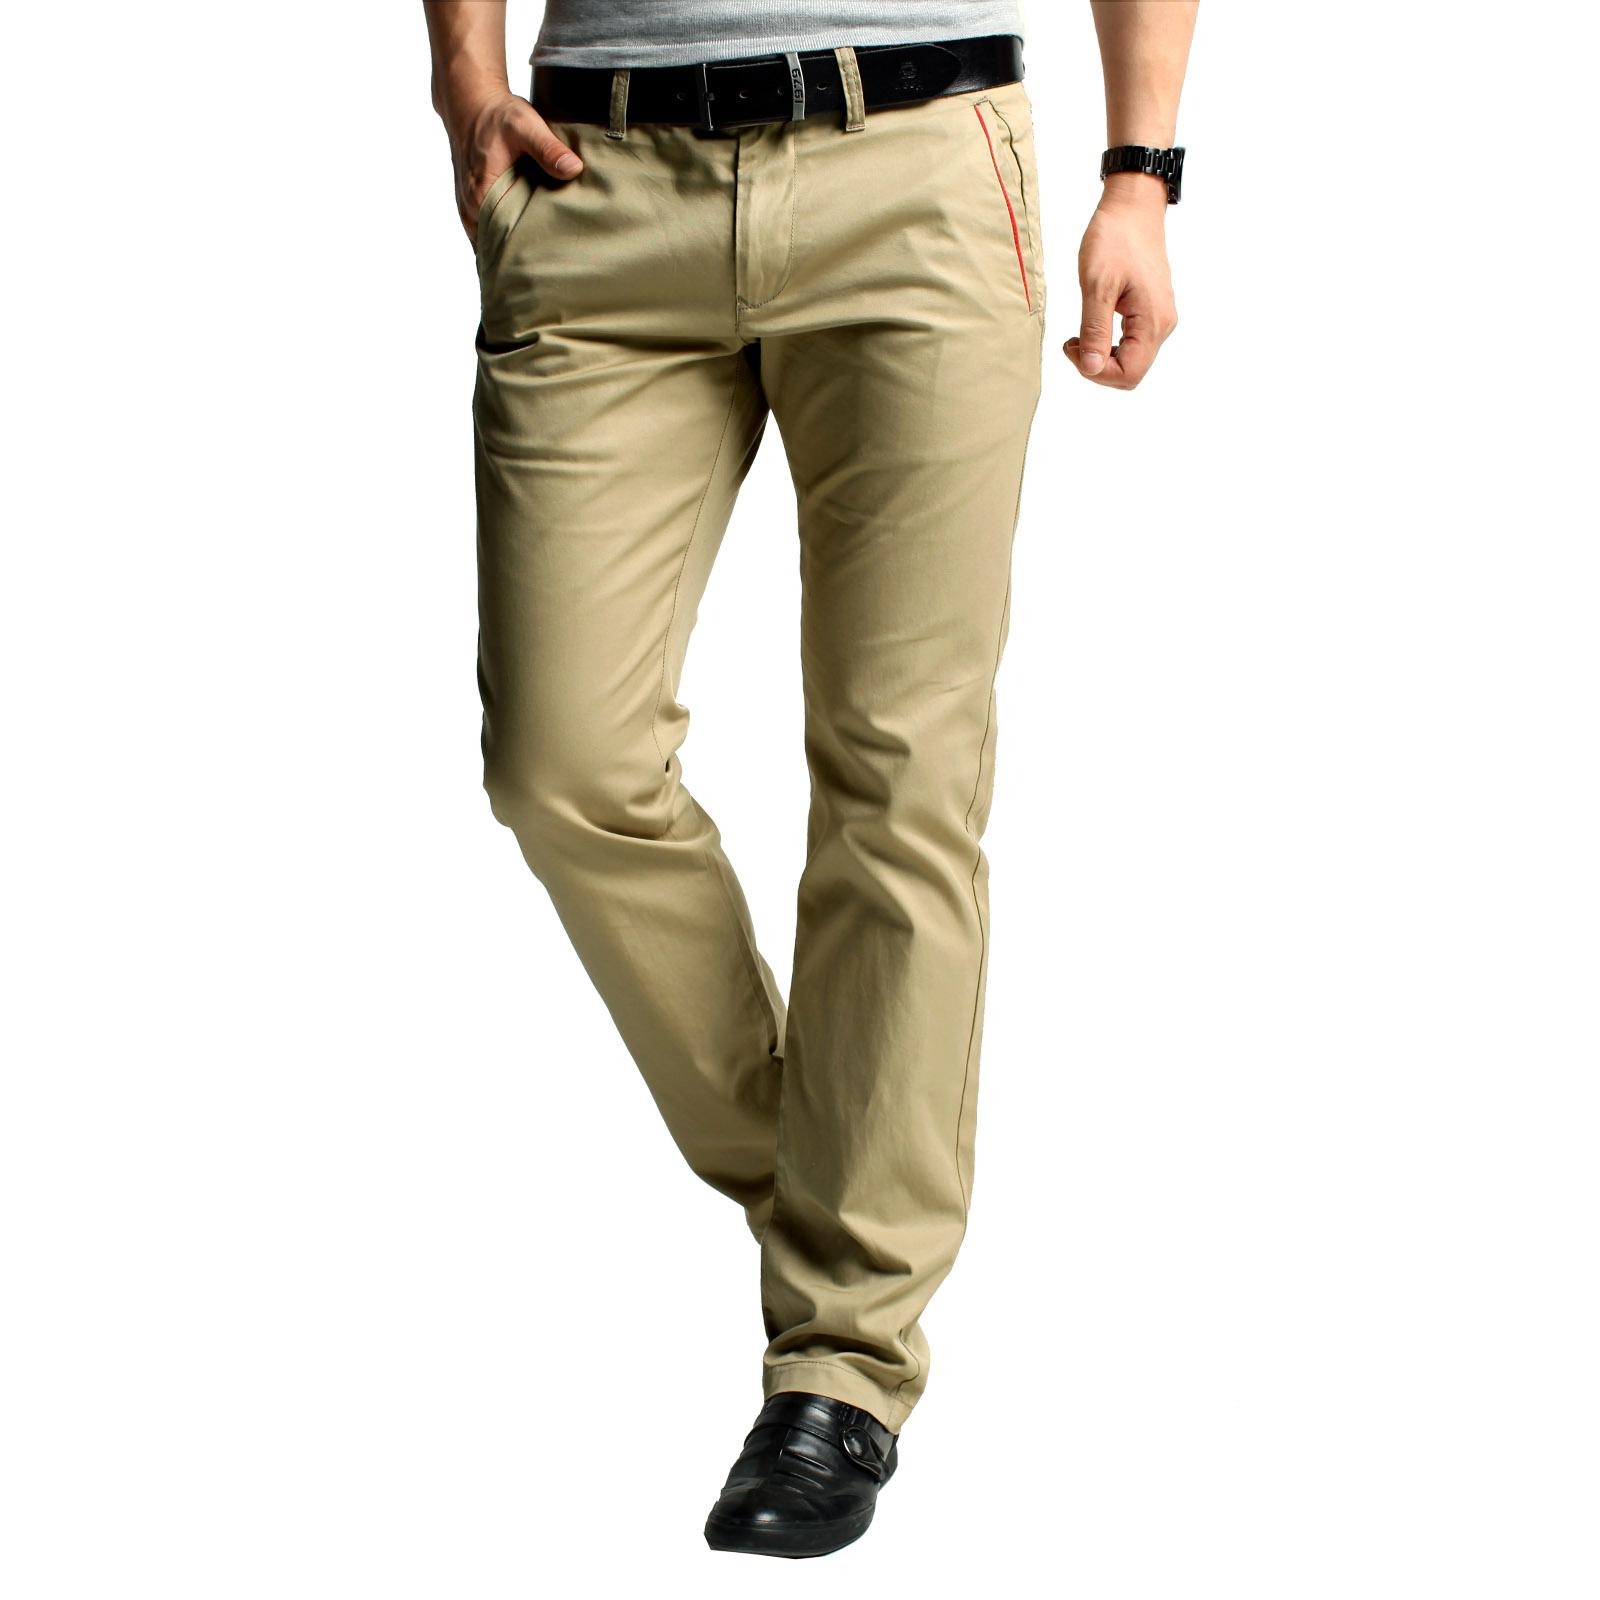 2017 Kuegou Khaki Pants Men Tide Autumn Men's Business Casual ...